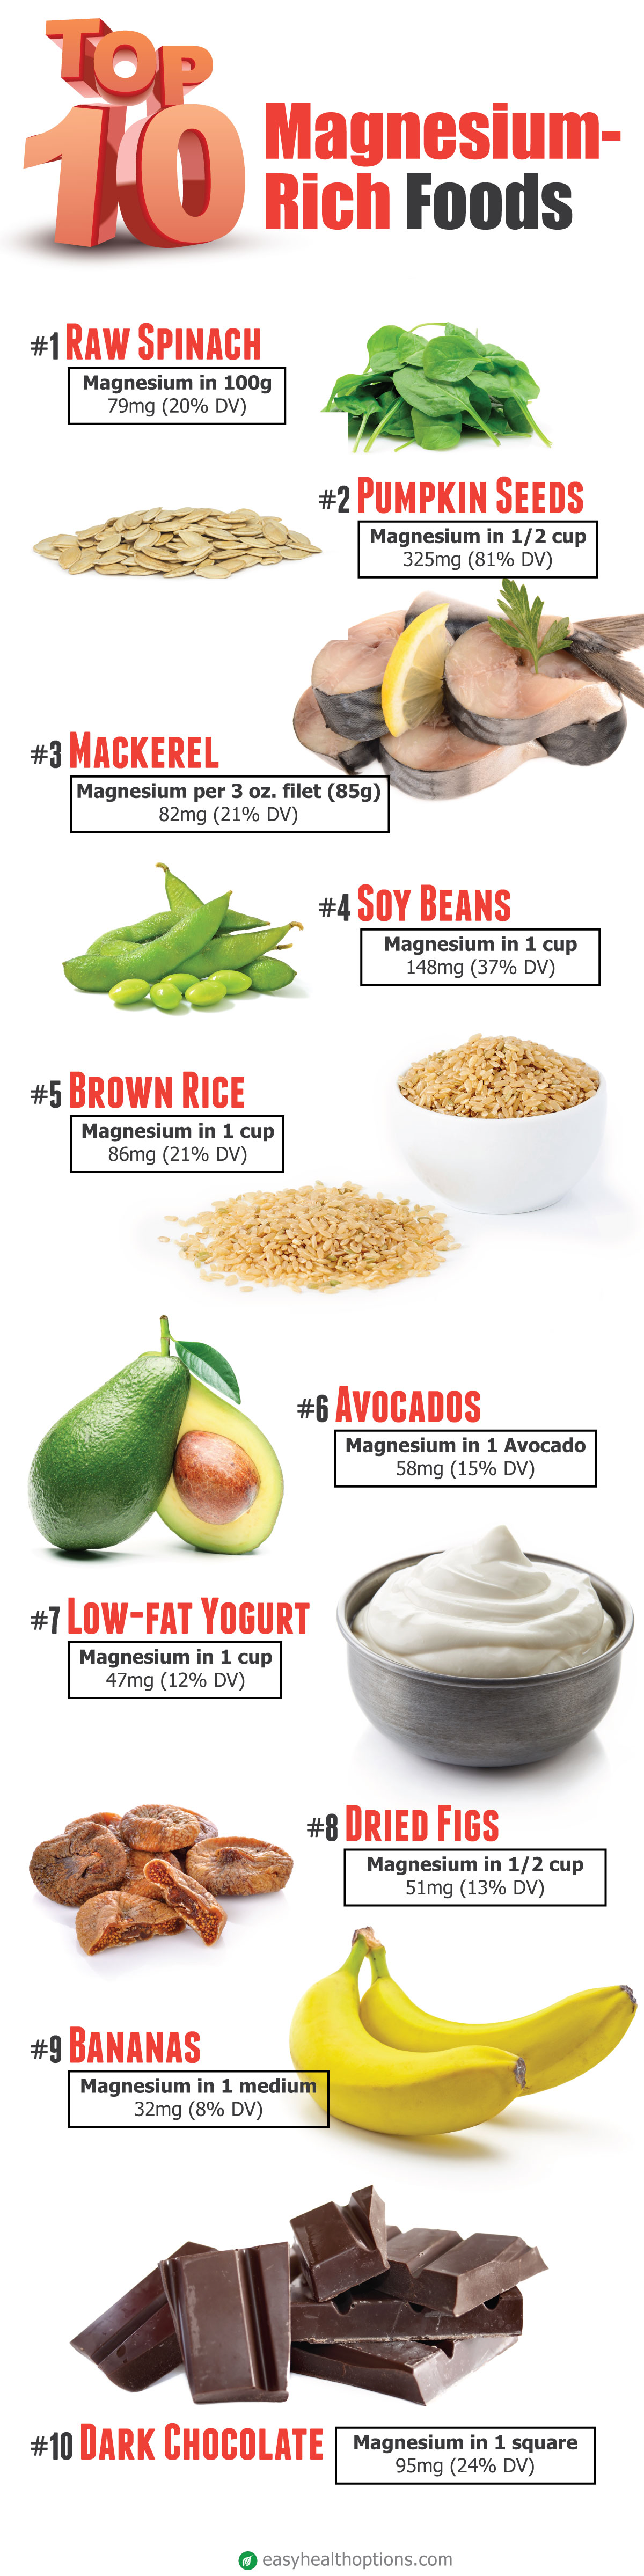 Magnesium citrate rich foods